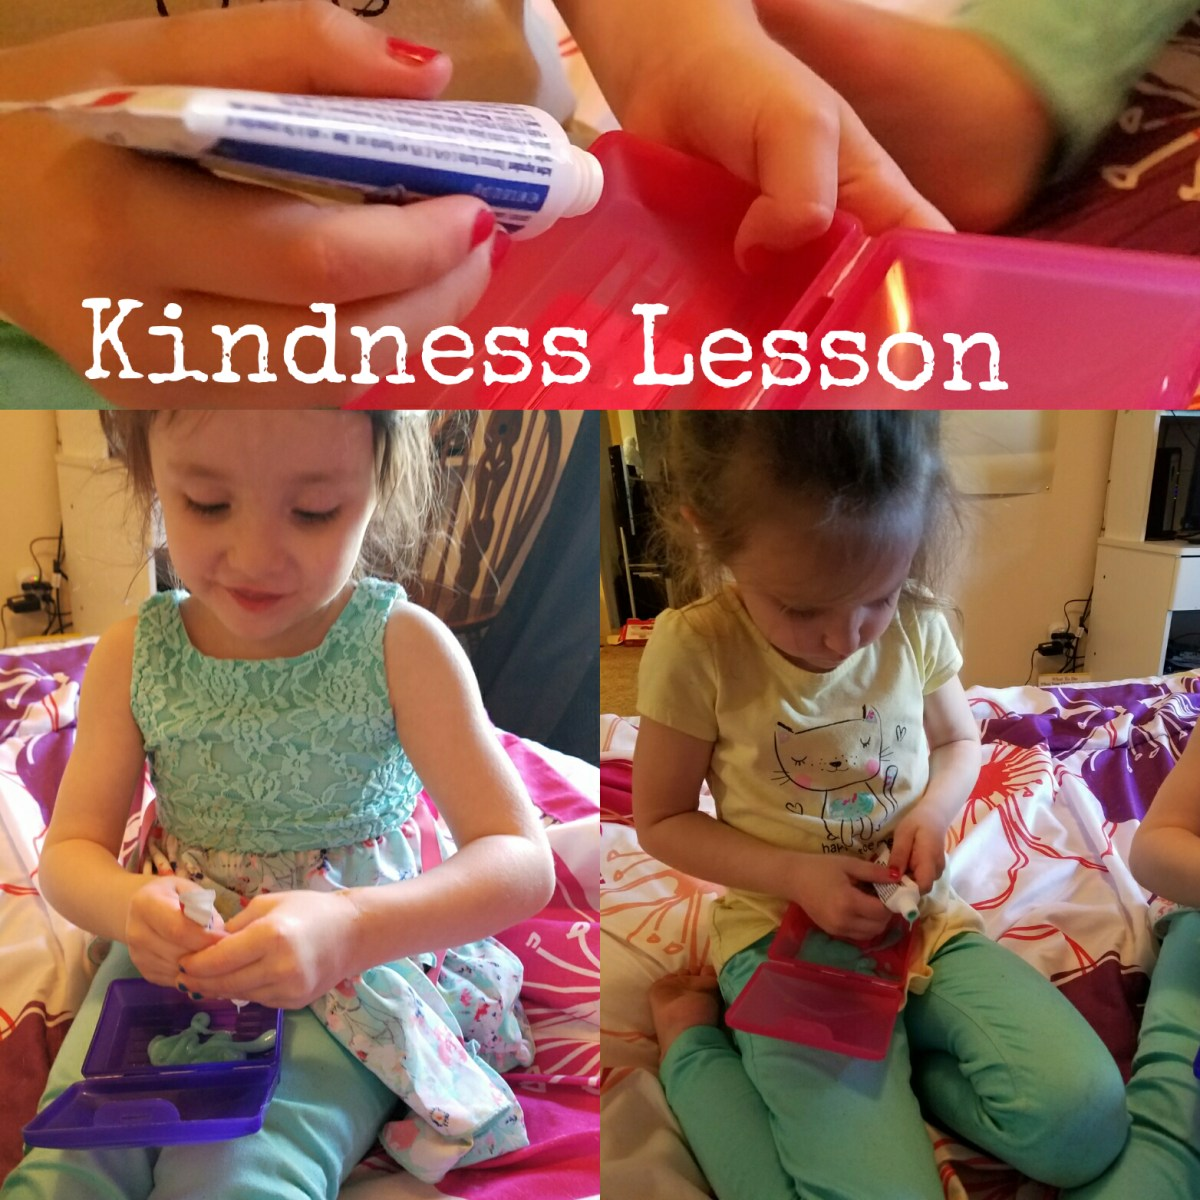 Kindness Lesson with Toothpaste:  Proverbs 12:18